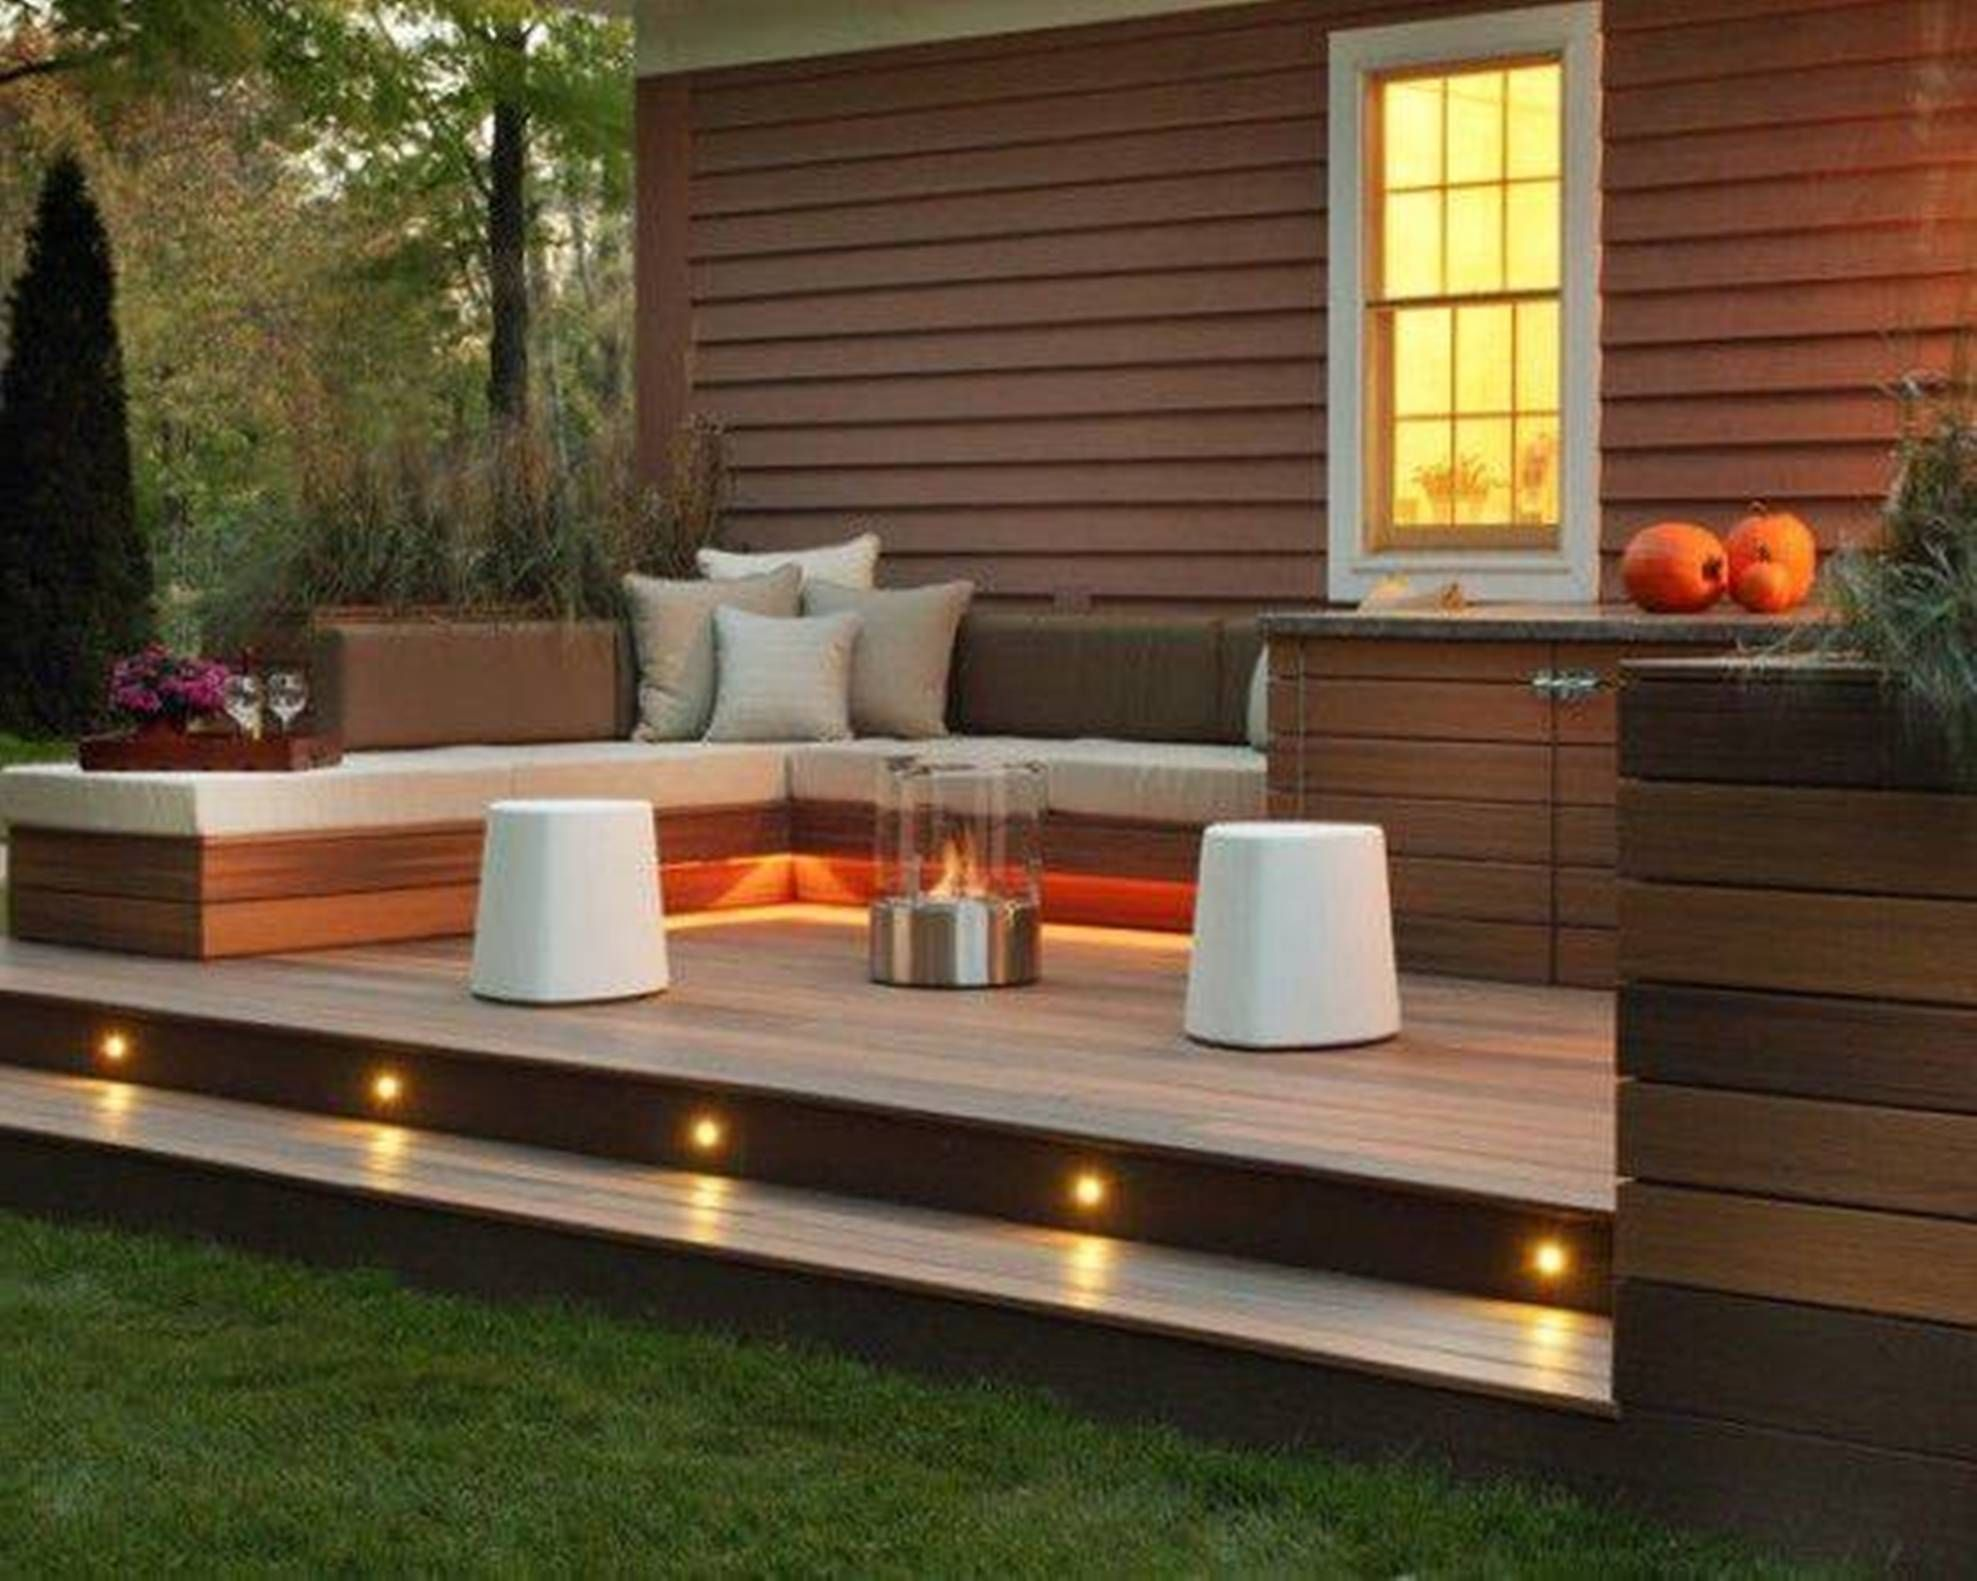 Landscaping And Outdoor Building , Great Small Backyard Deck Designs :  Small Backyard Deck Designs With Part 76